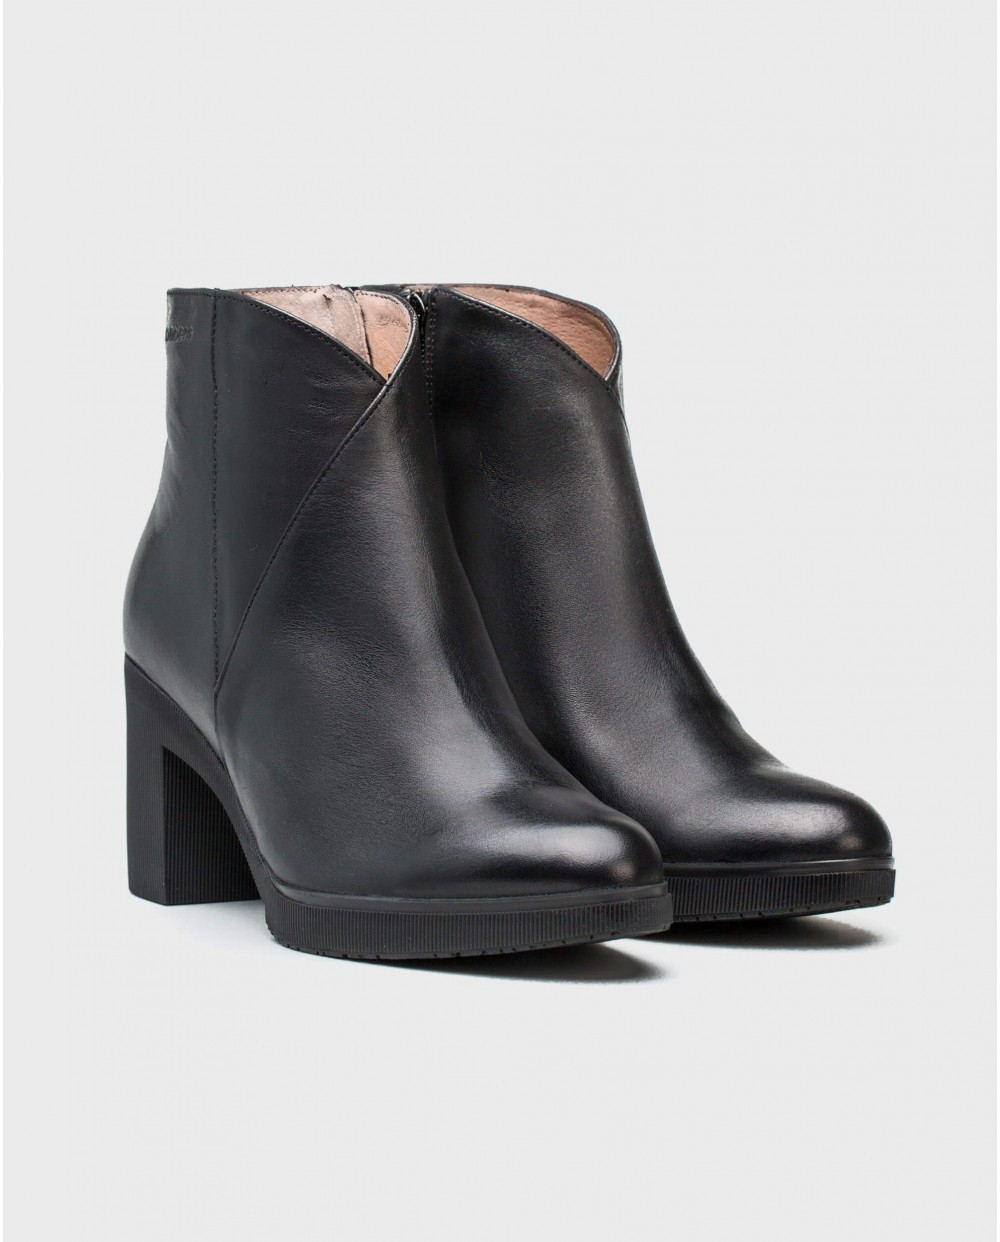 Wonders-Ankle Boots-Leather platform ankle boot